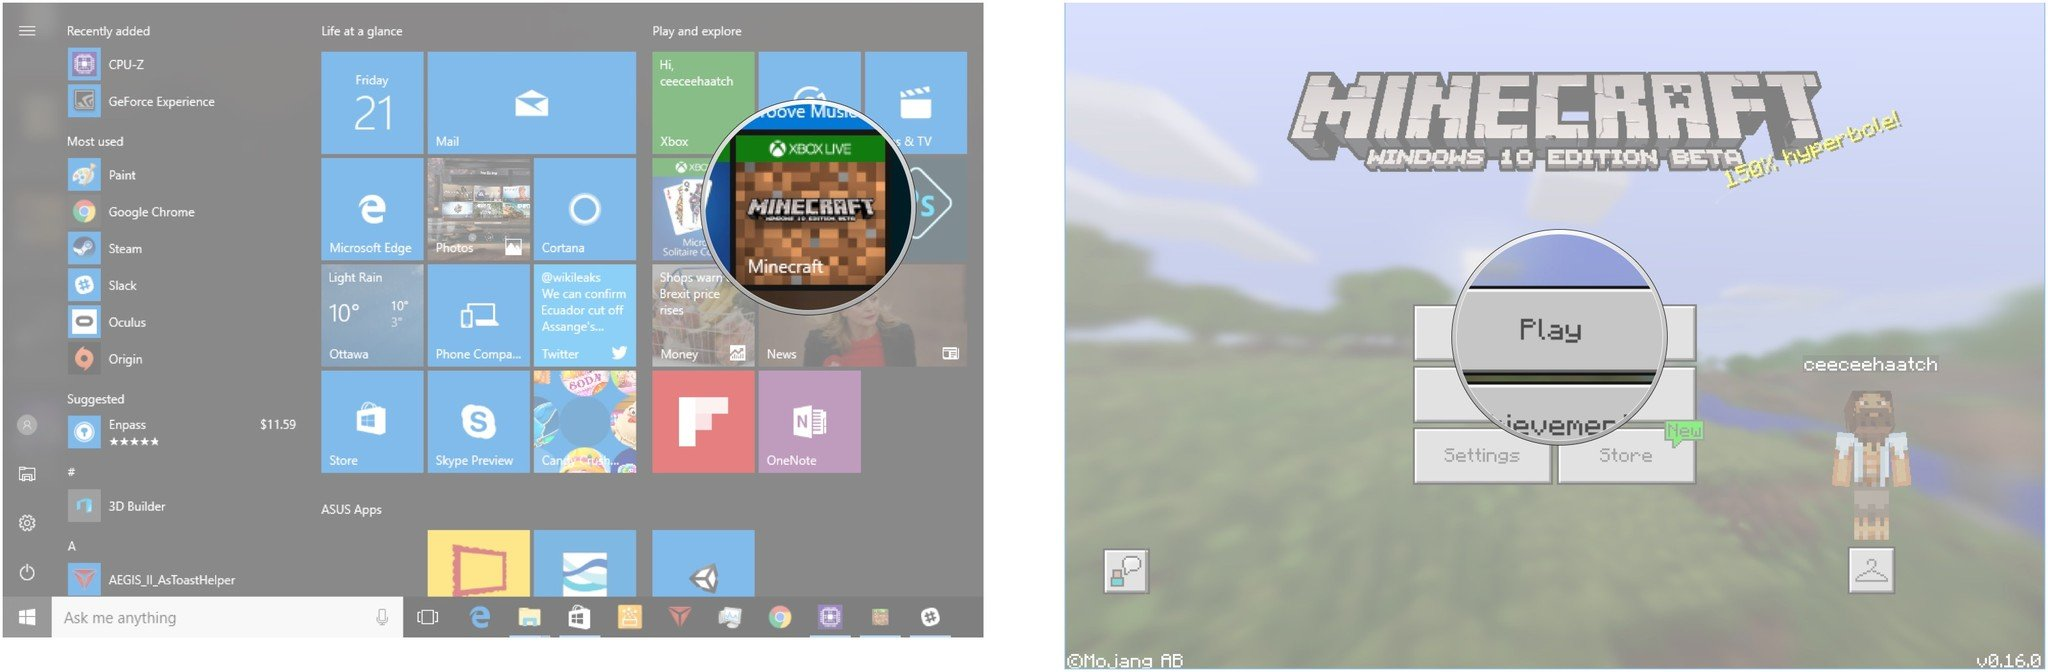 Guide To Slash Commands And Cheats In Minecraft Windows 10 Windows Central